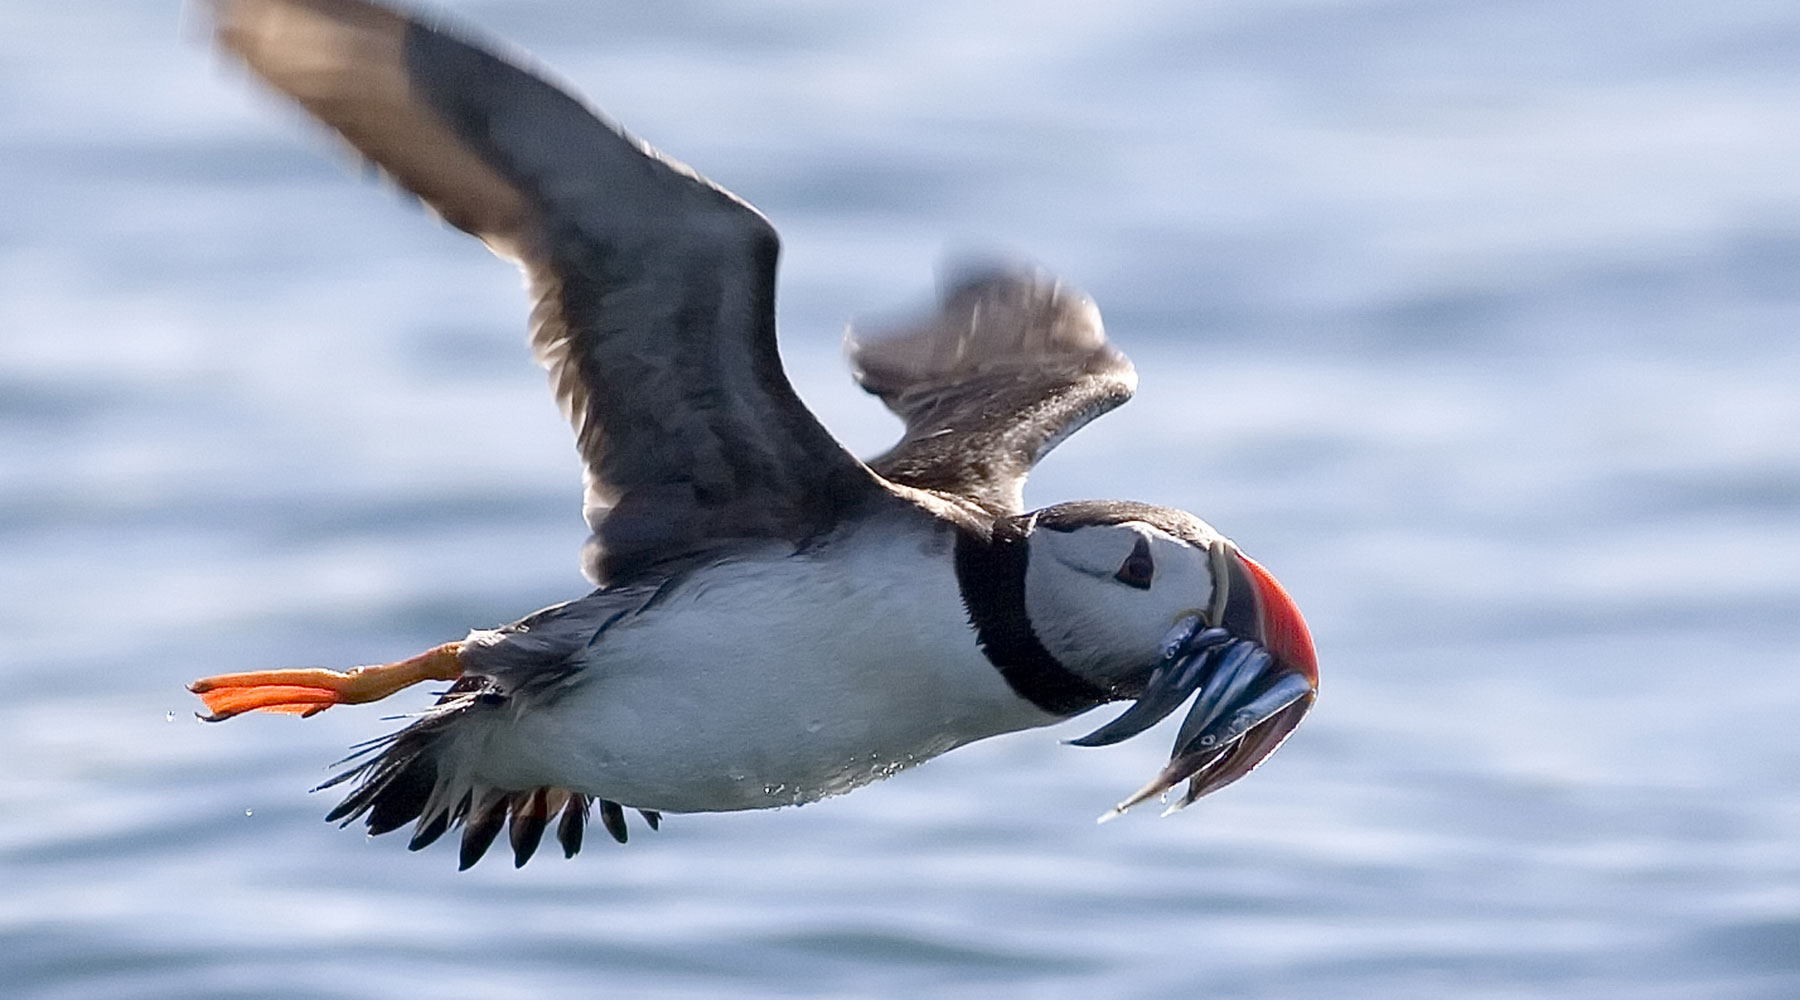 Damian Waters/Drumimages.co.uk | Puffin In Flight